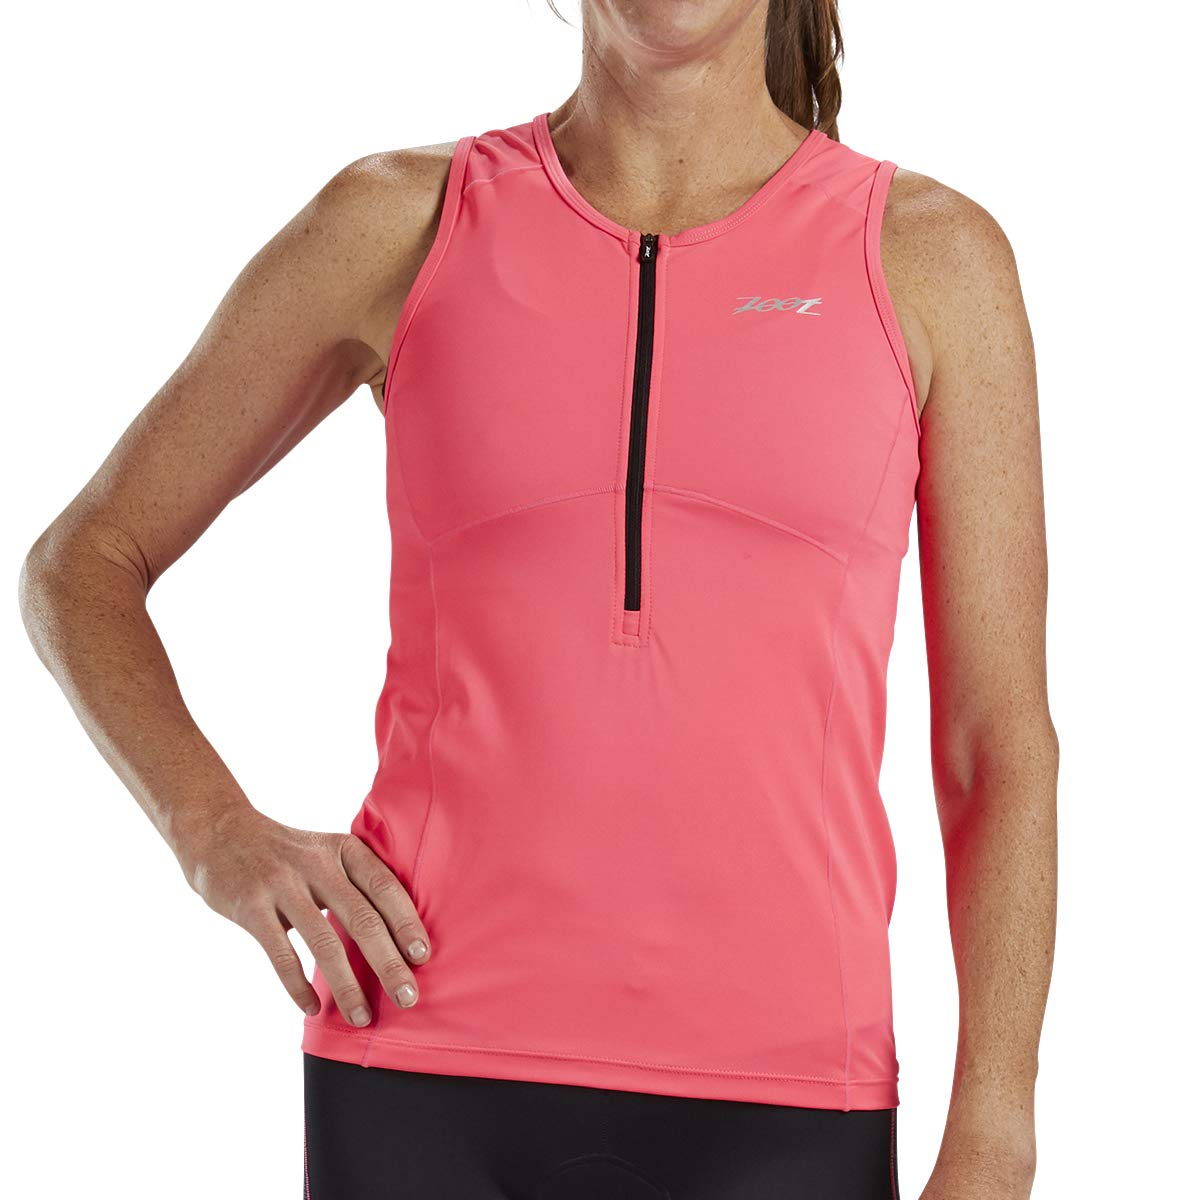 Zoot Women's Core Tri Tank - Performance Triathlon Top with Mesh Panels and 3 Pockets (Blush, X Small)